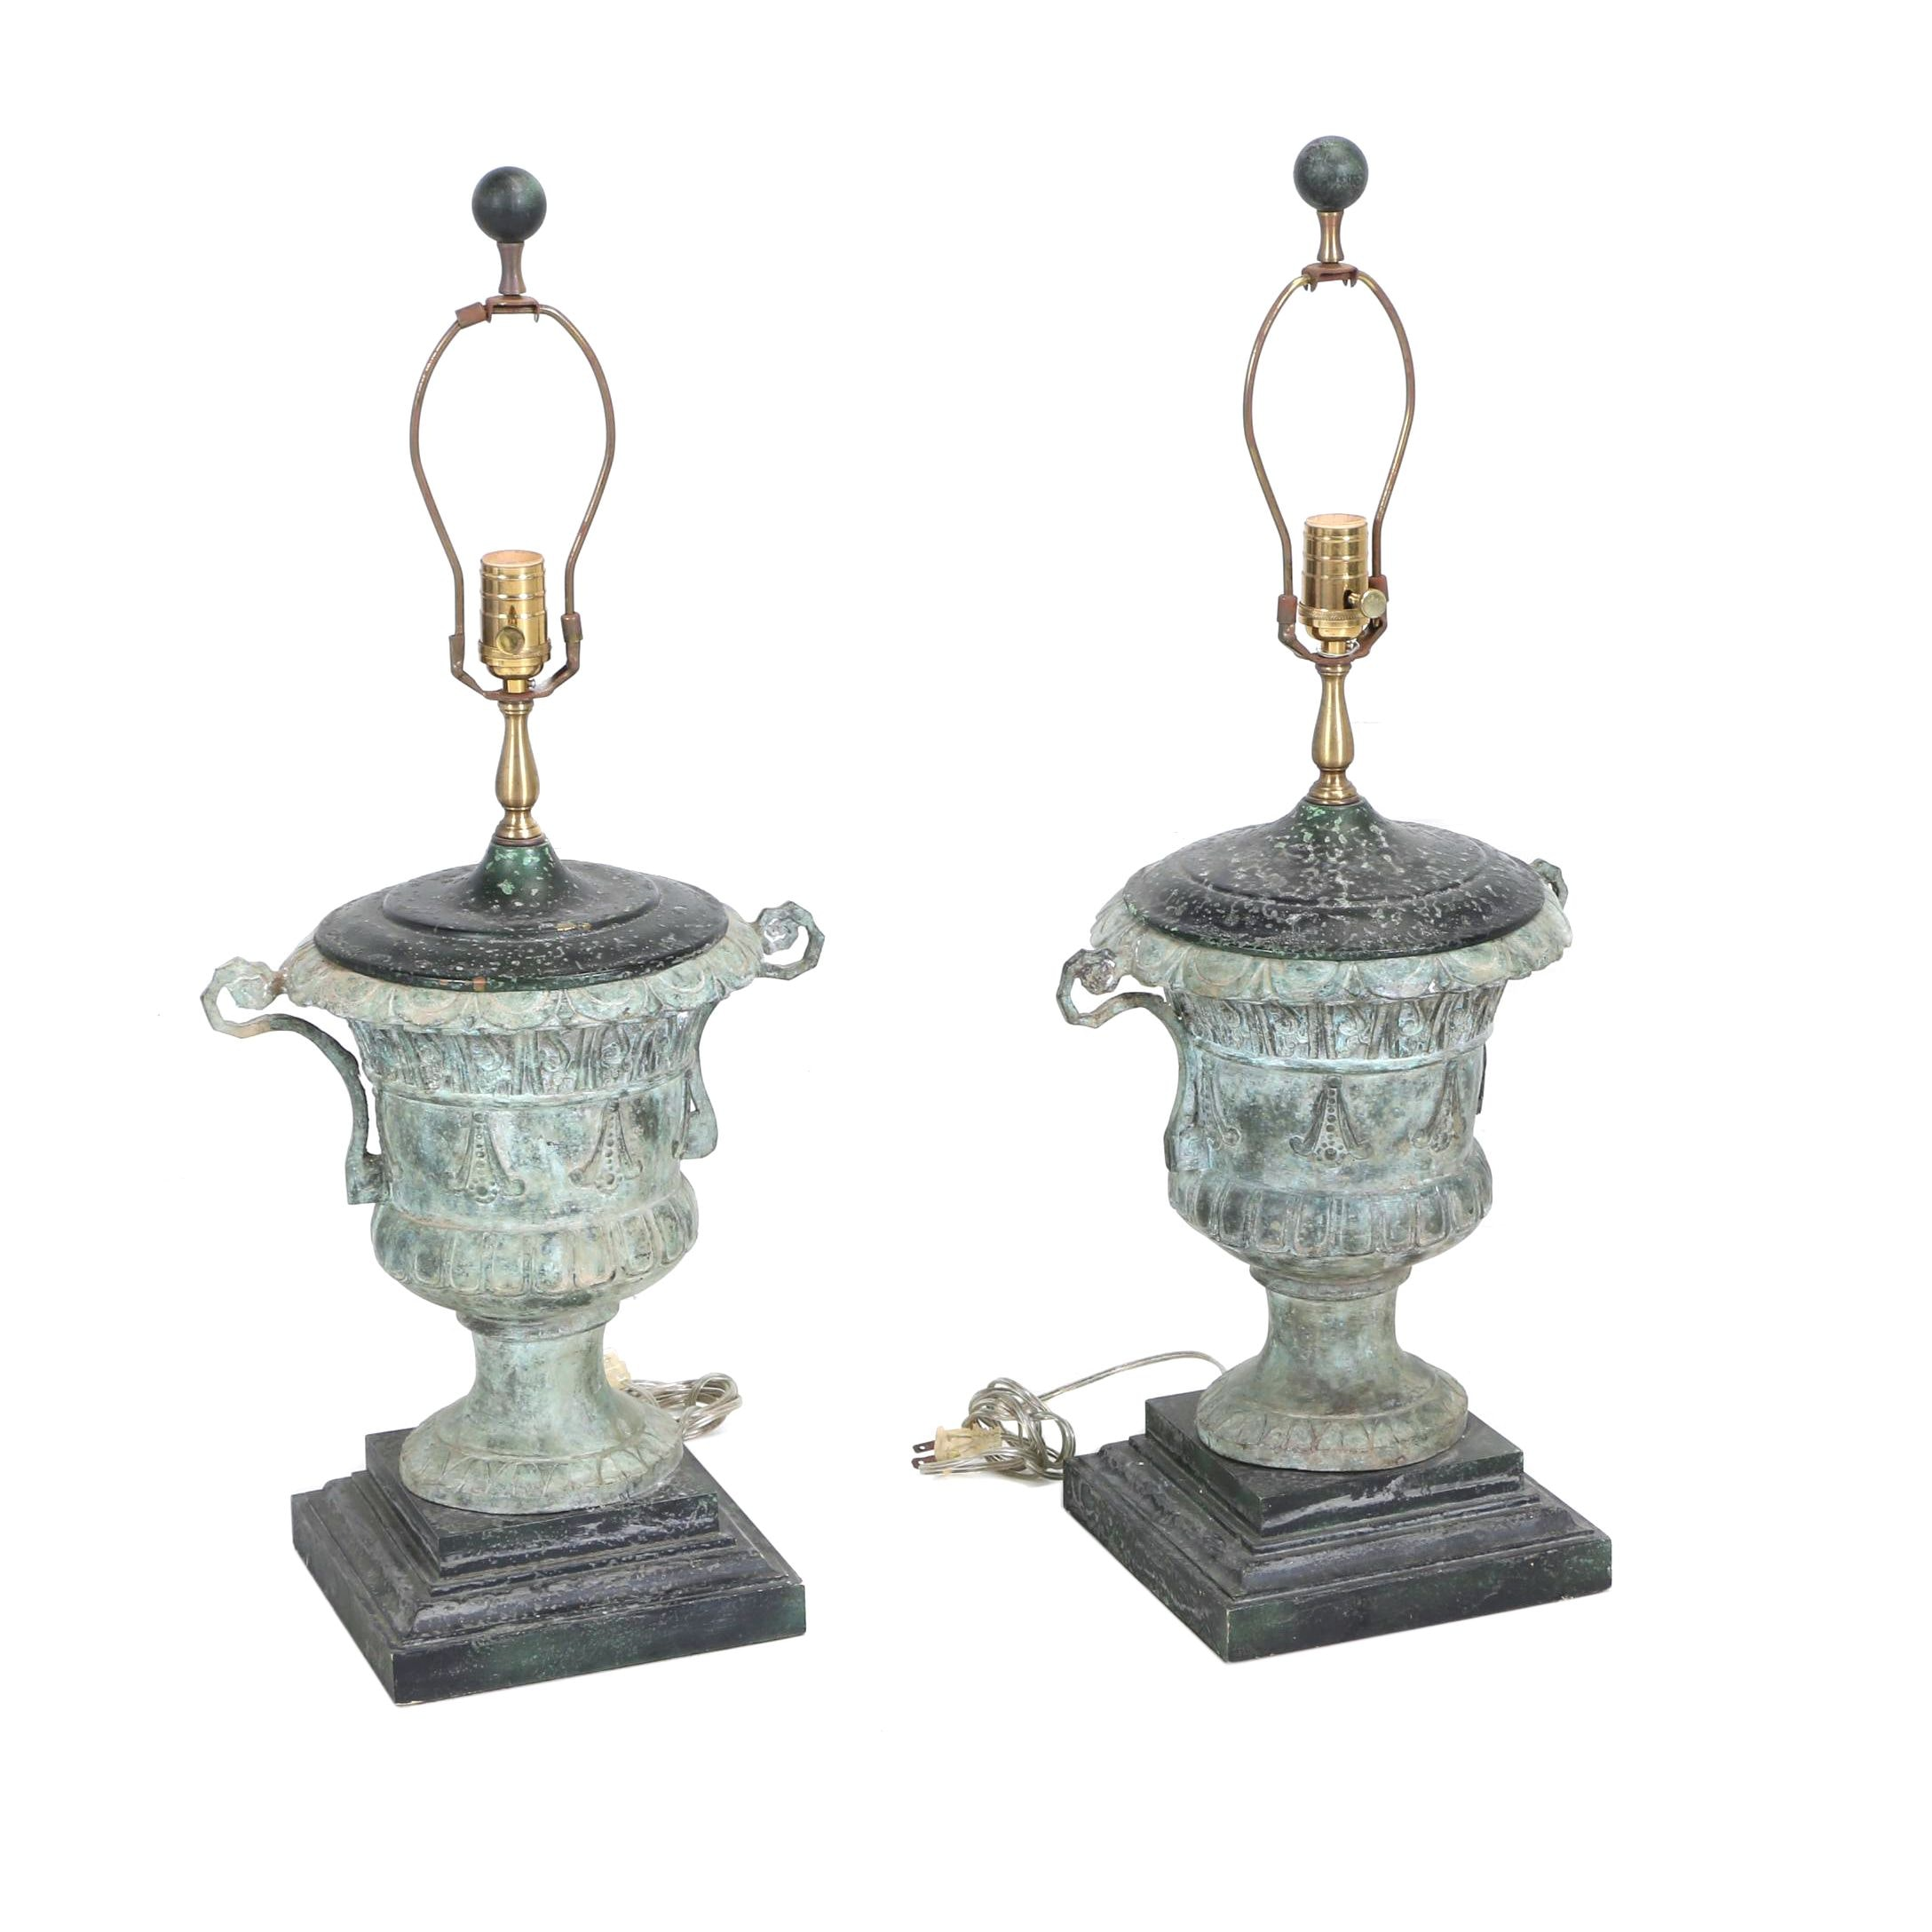 Pair of Neoclassical Style Cast Metal, Brass and Wood Campagna-Form Table Lamps